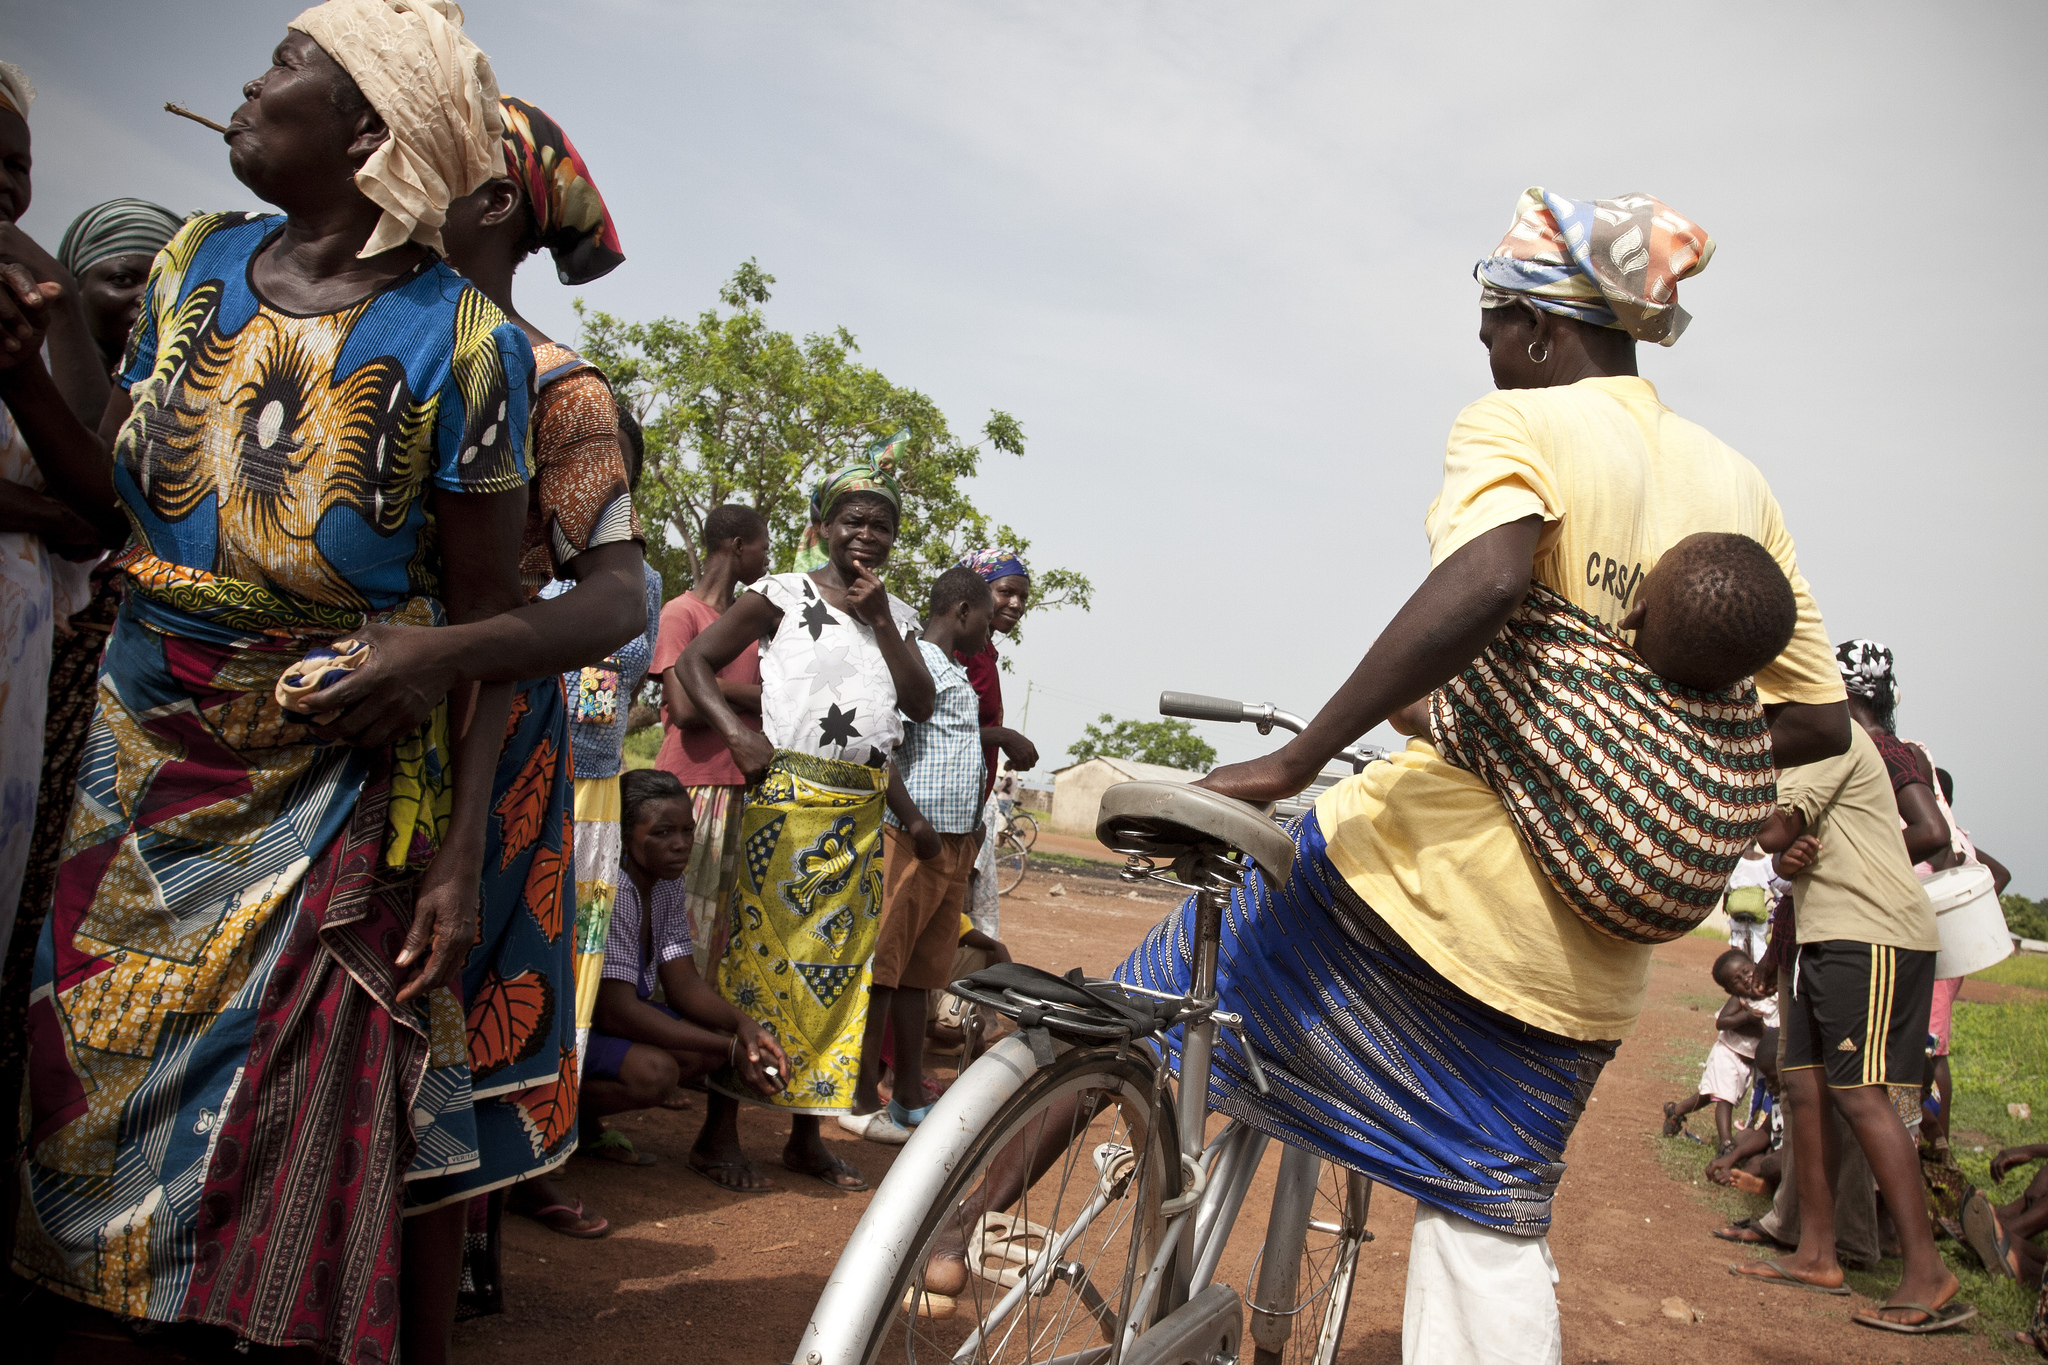 Girl on Bike in Africa for Recycle